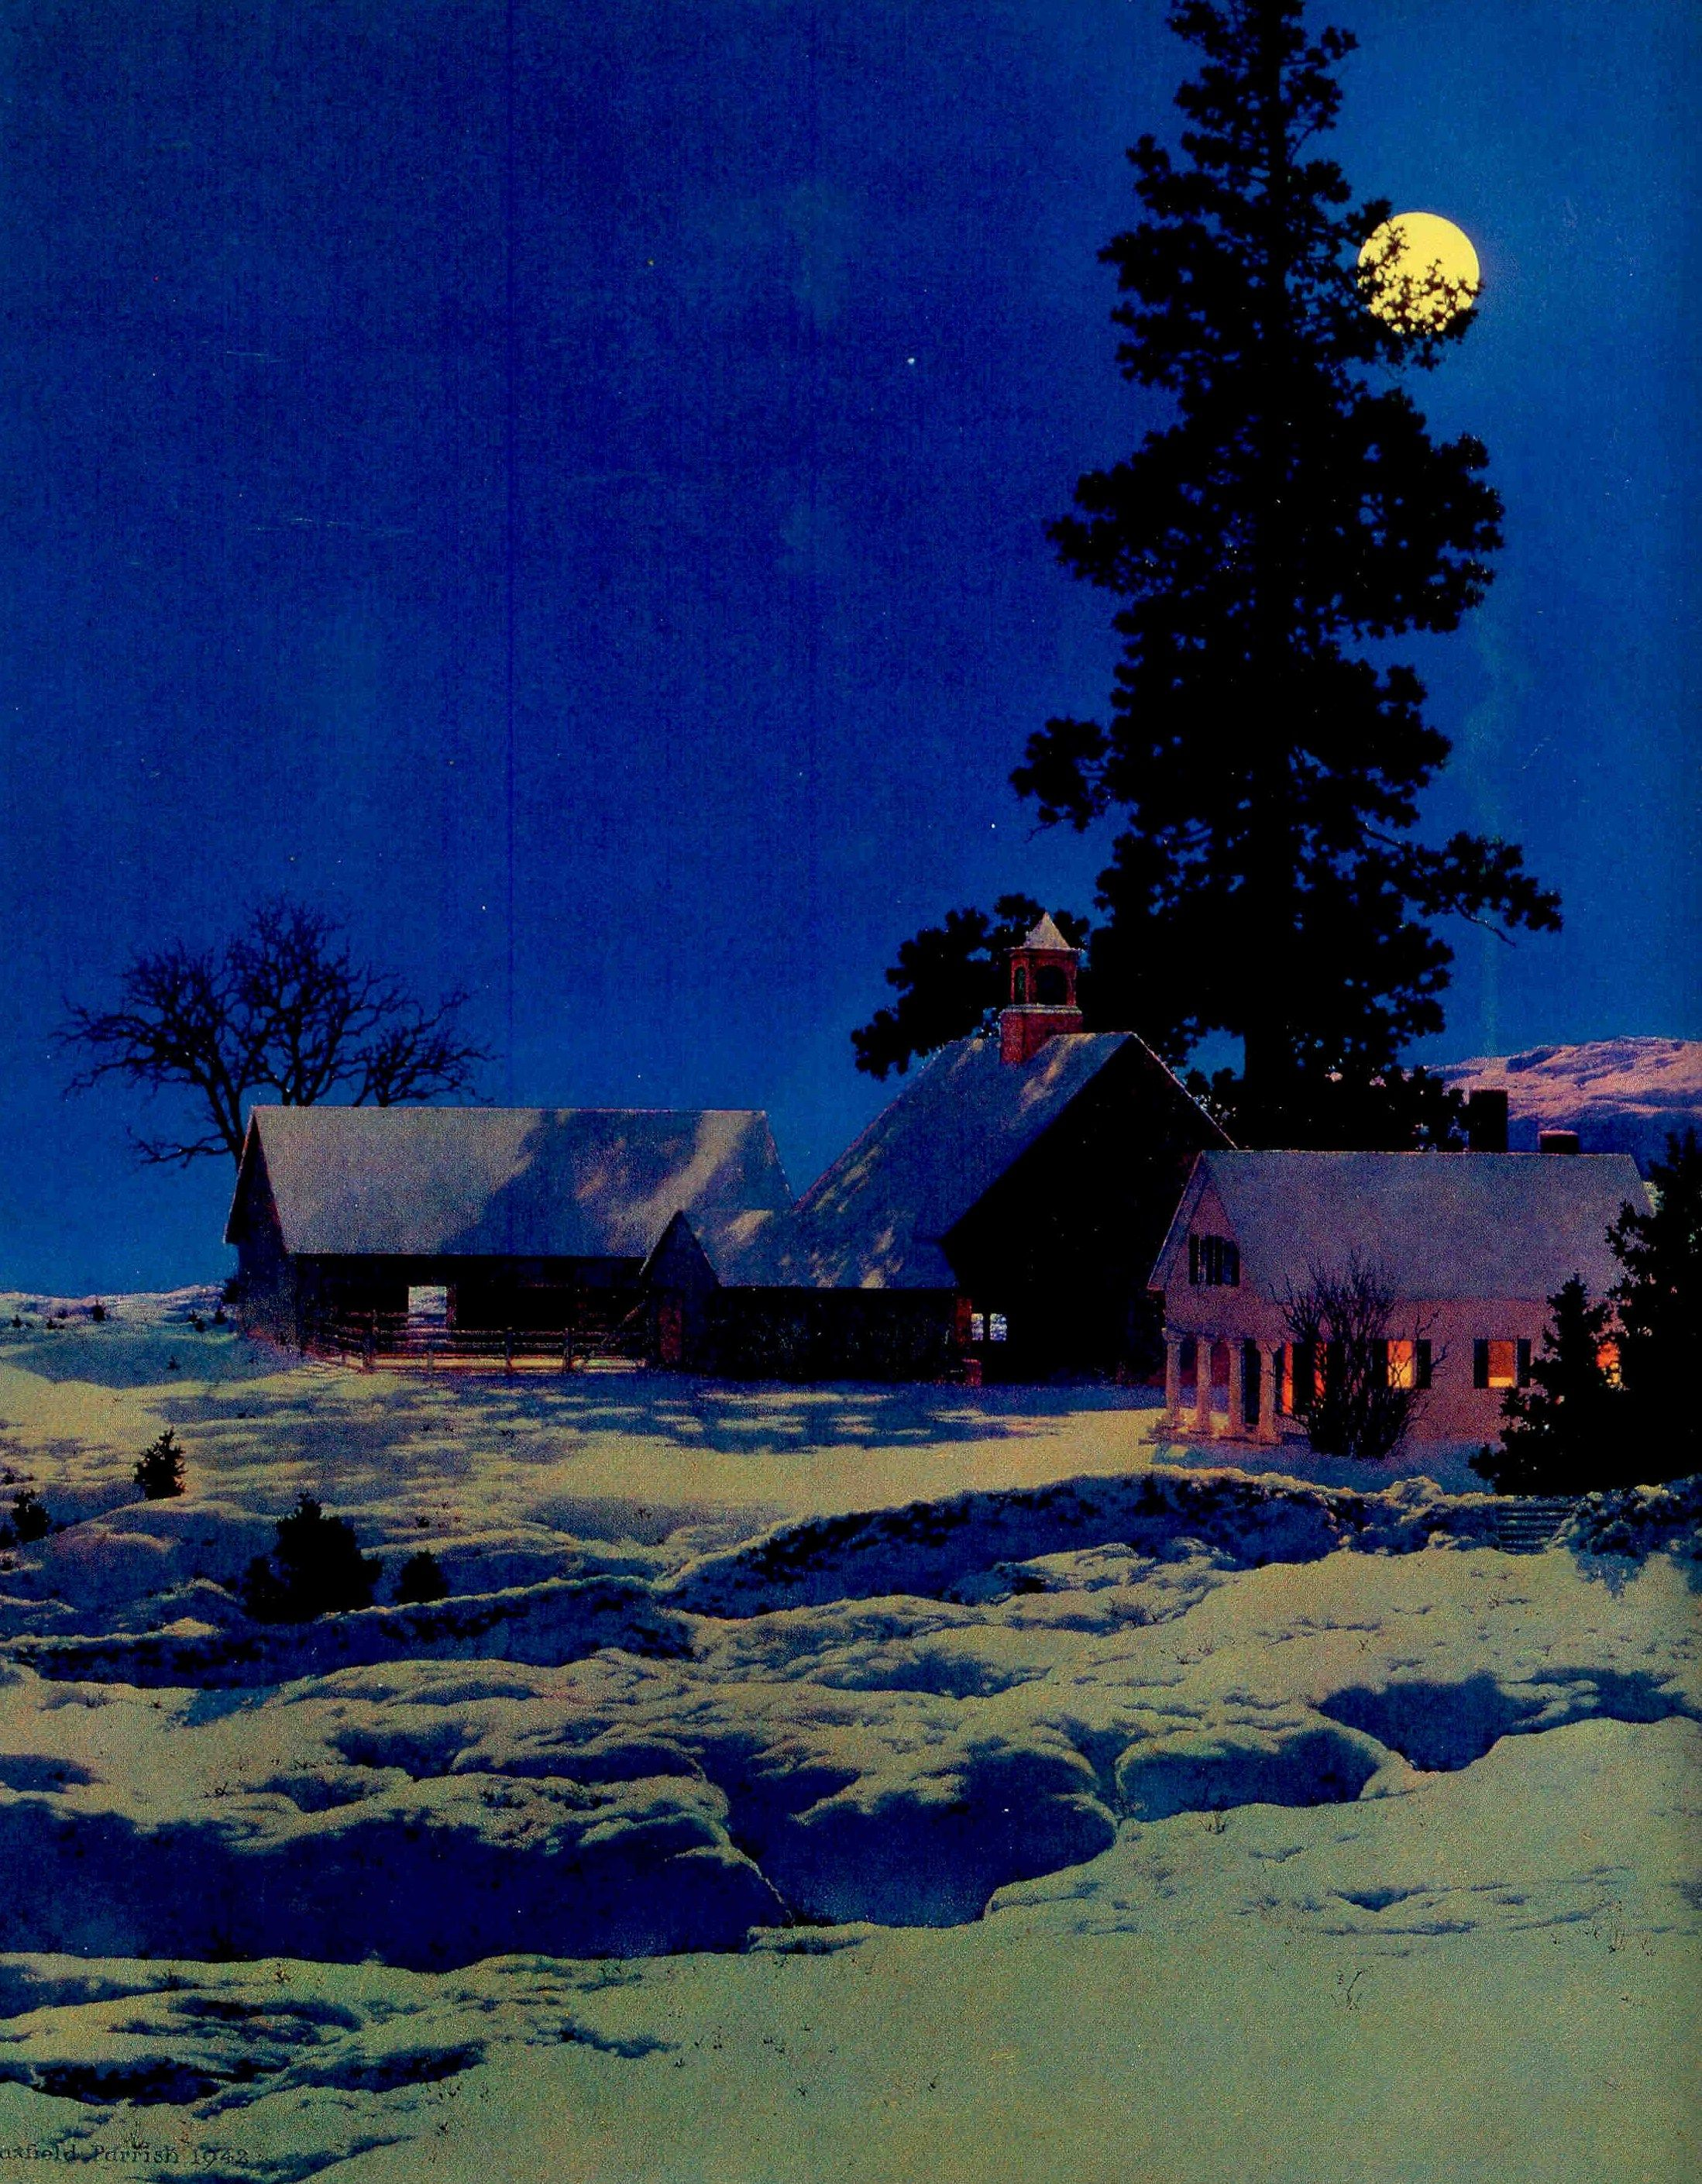 Maxfield Parrish Moonlight Night 22x30 Hand Numbered Ltd Edition Art Deco Print